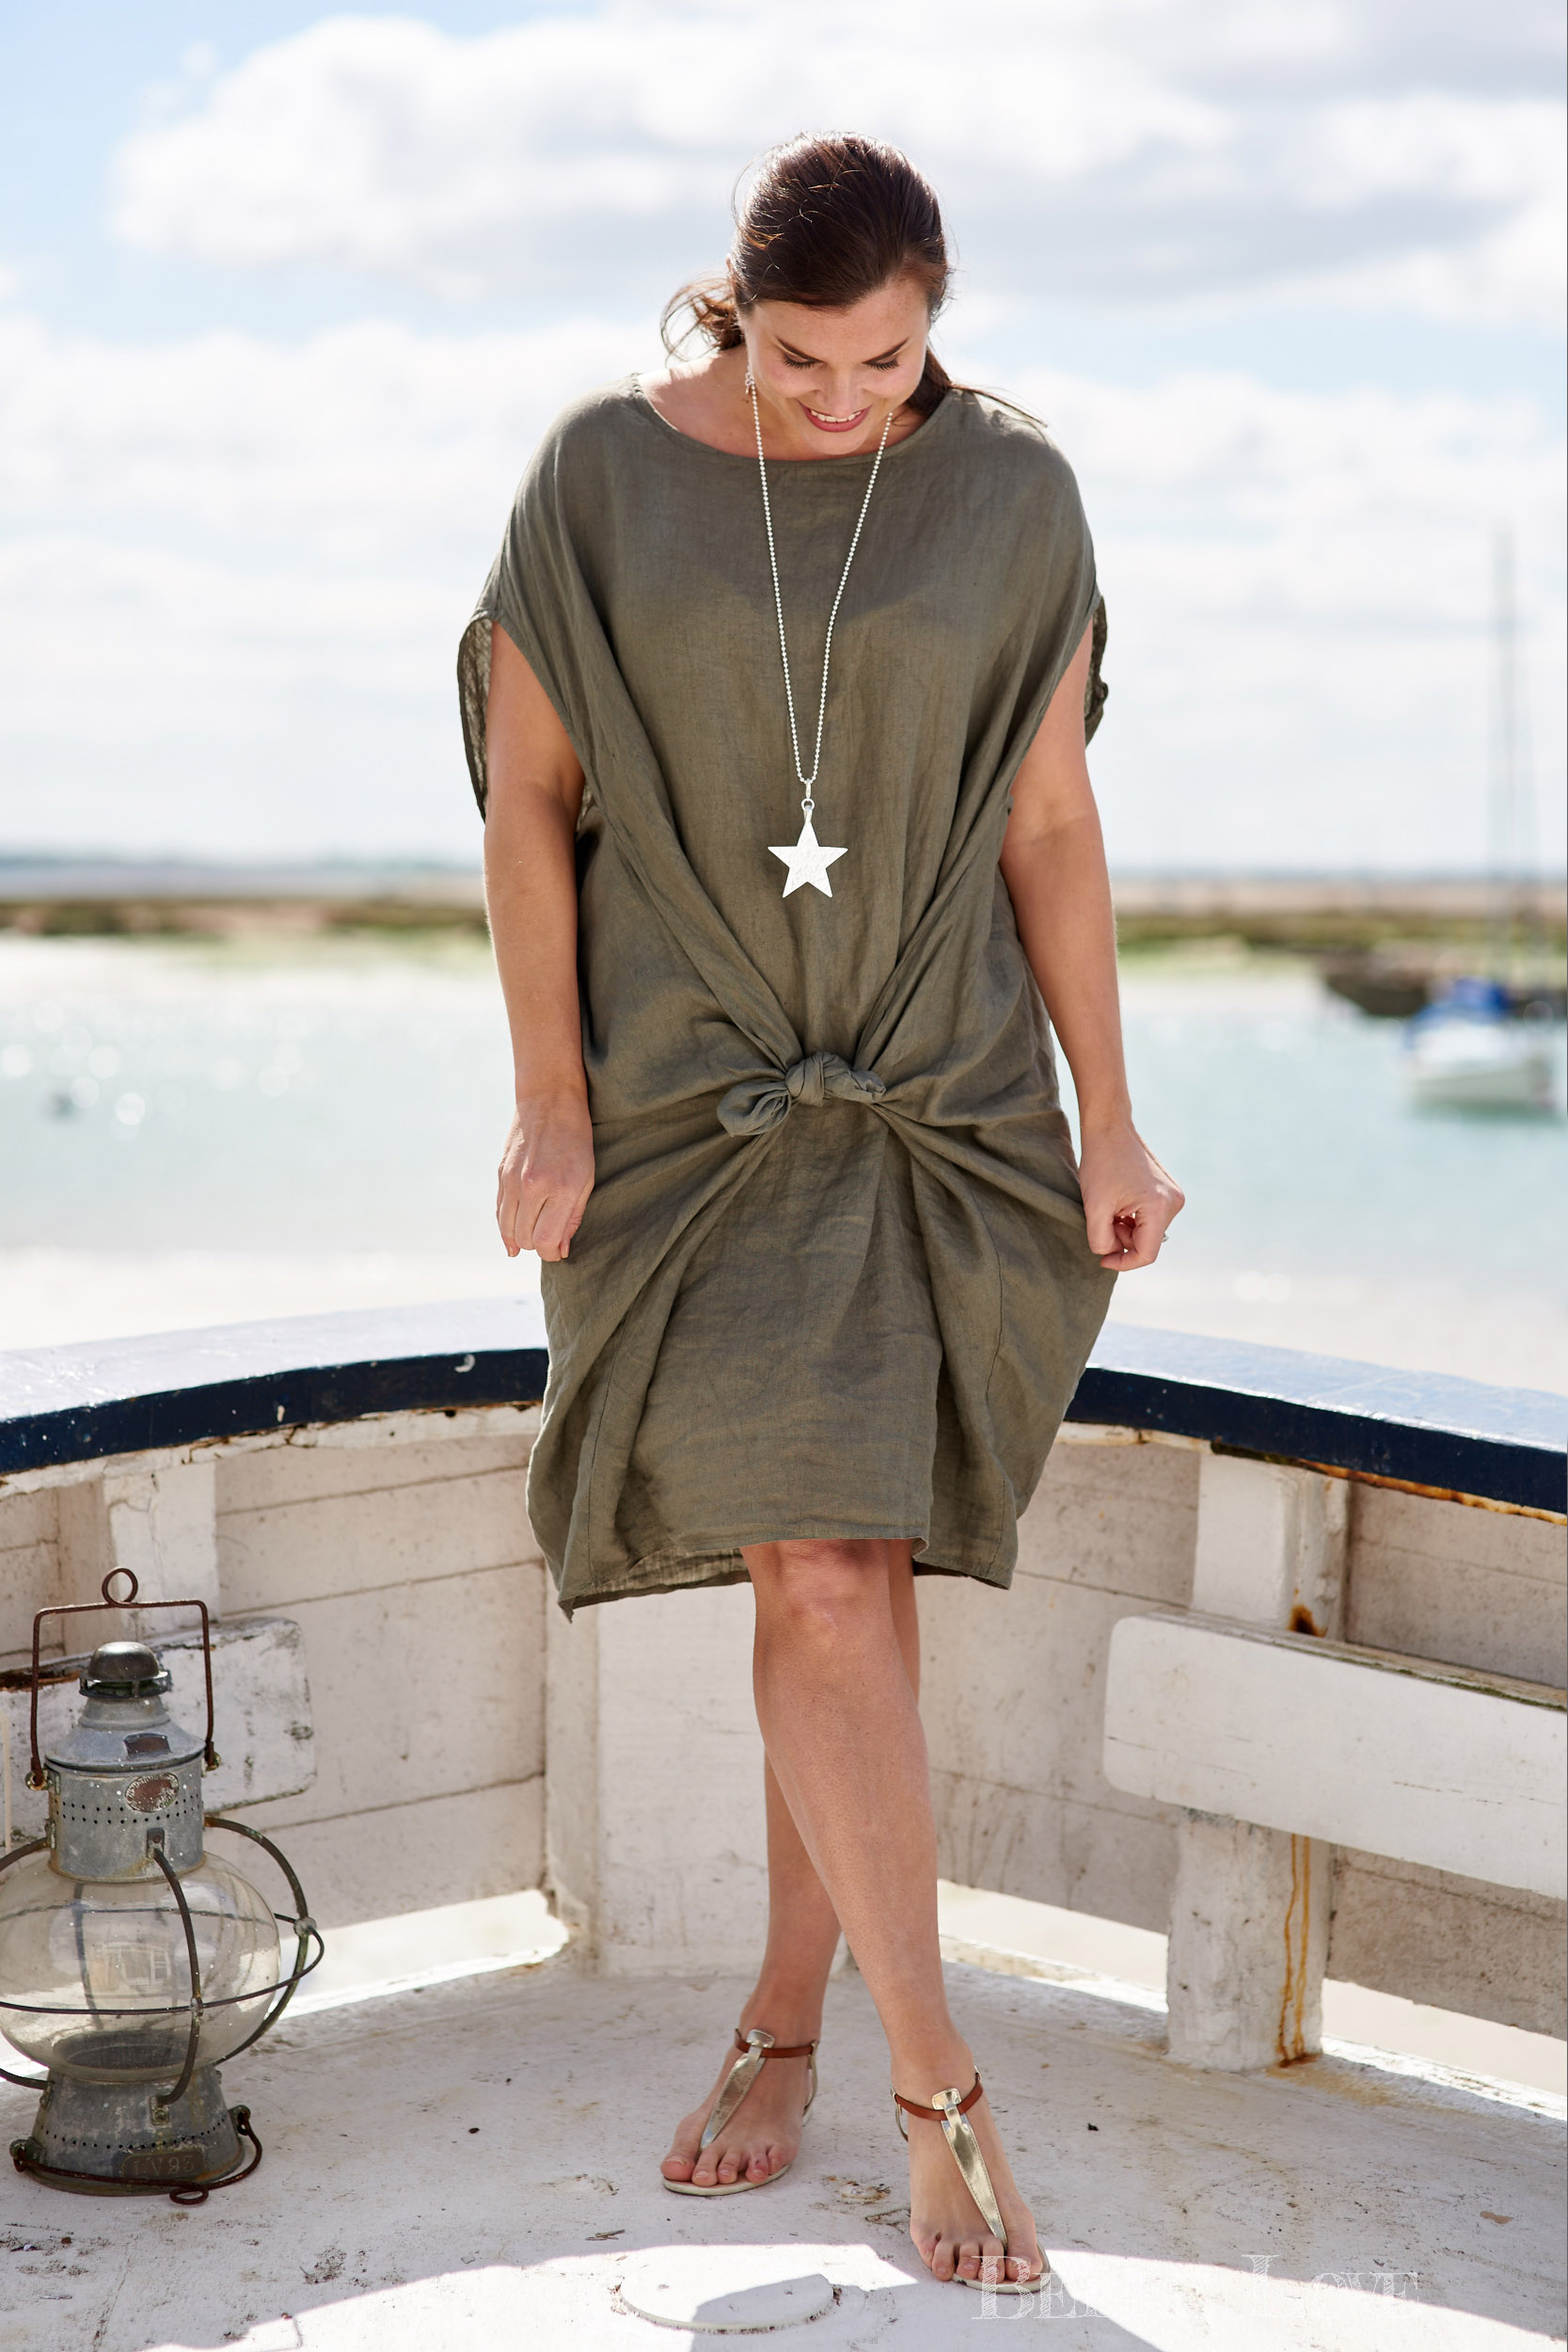 Women's fashion shoot on Mersea Island